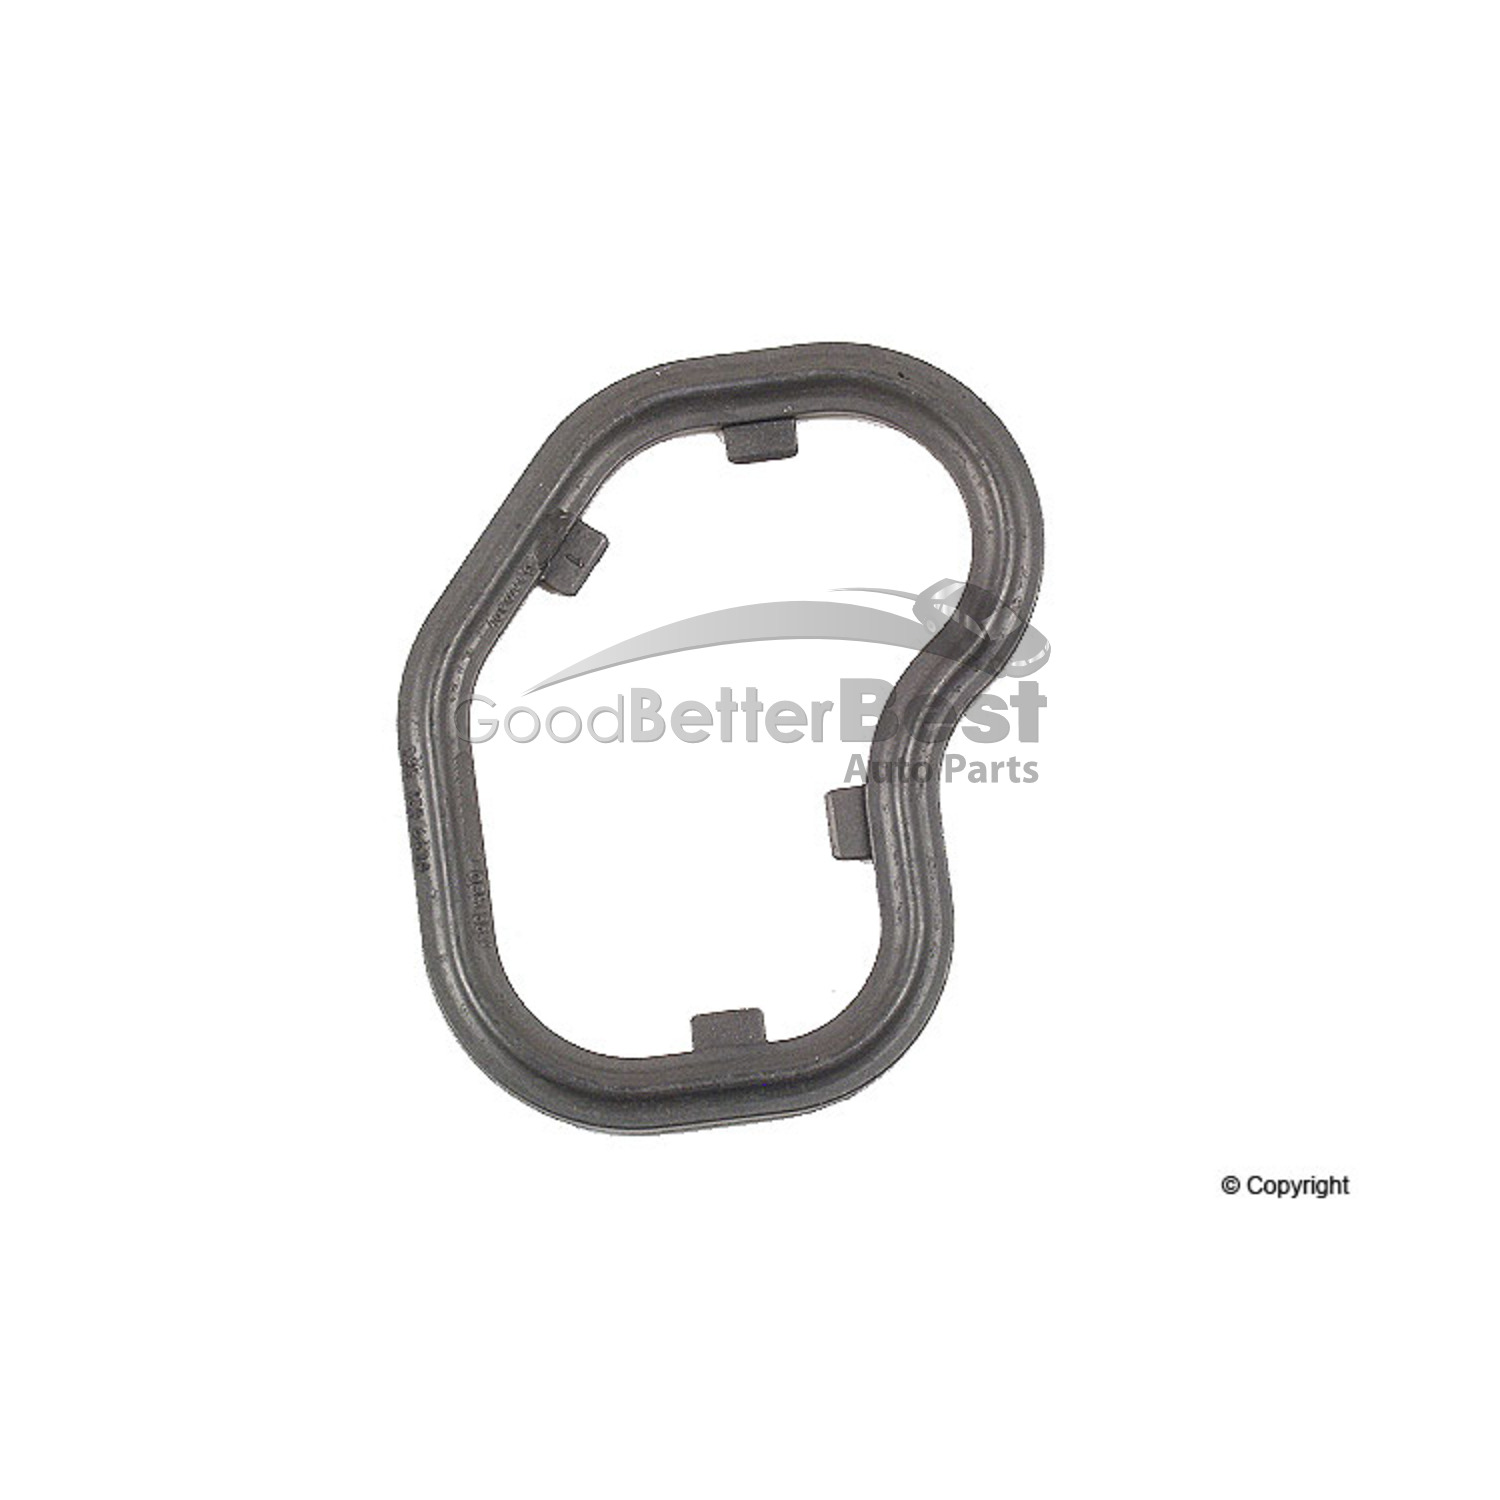 New Crp Automatic Transmission Fluid Screen Gasket